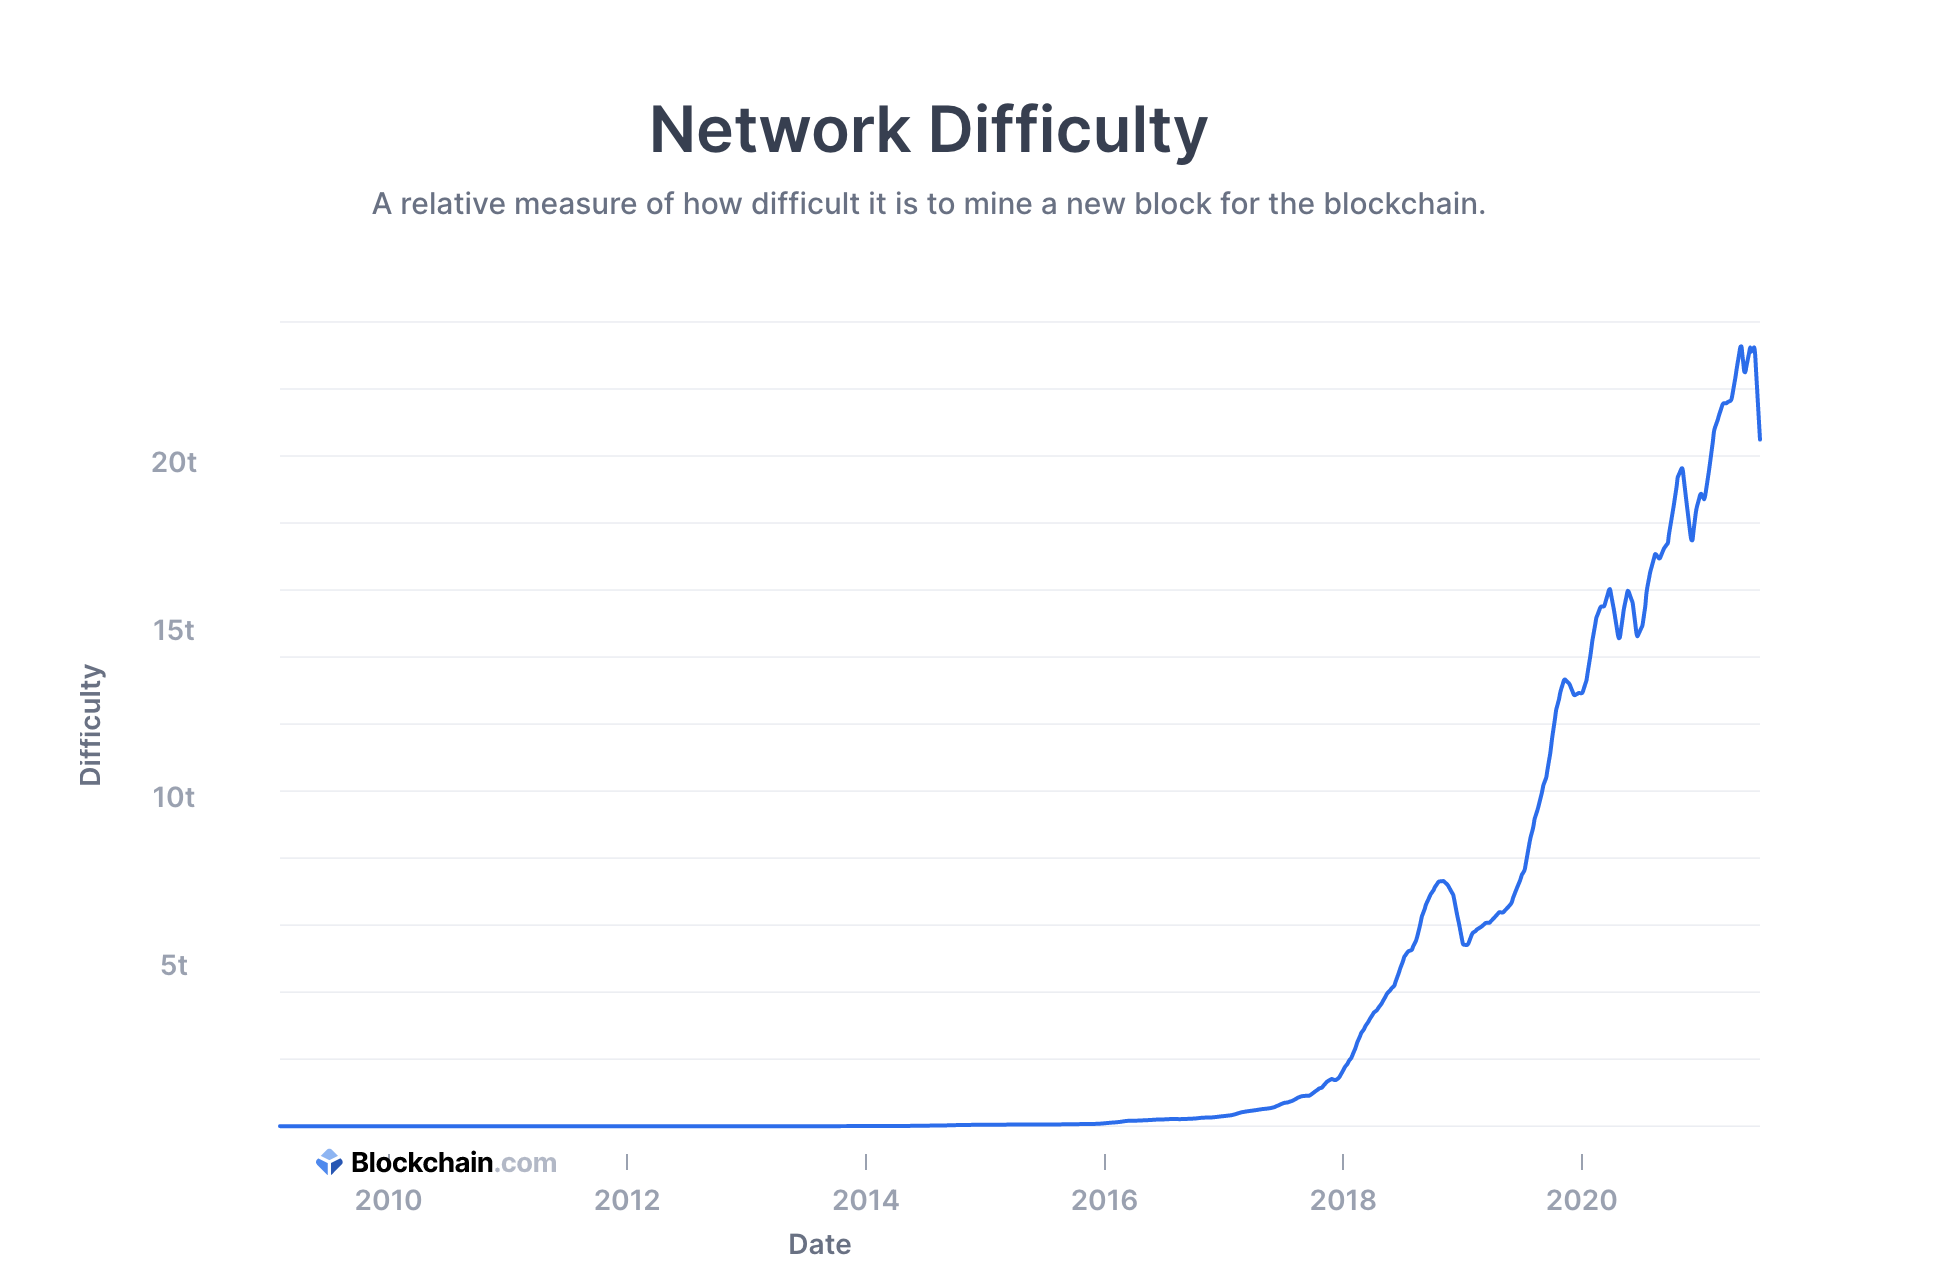 Bitcoin difficulty over time graph